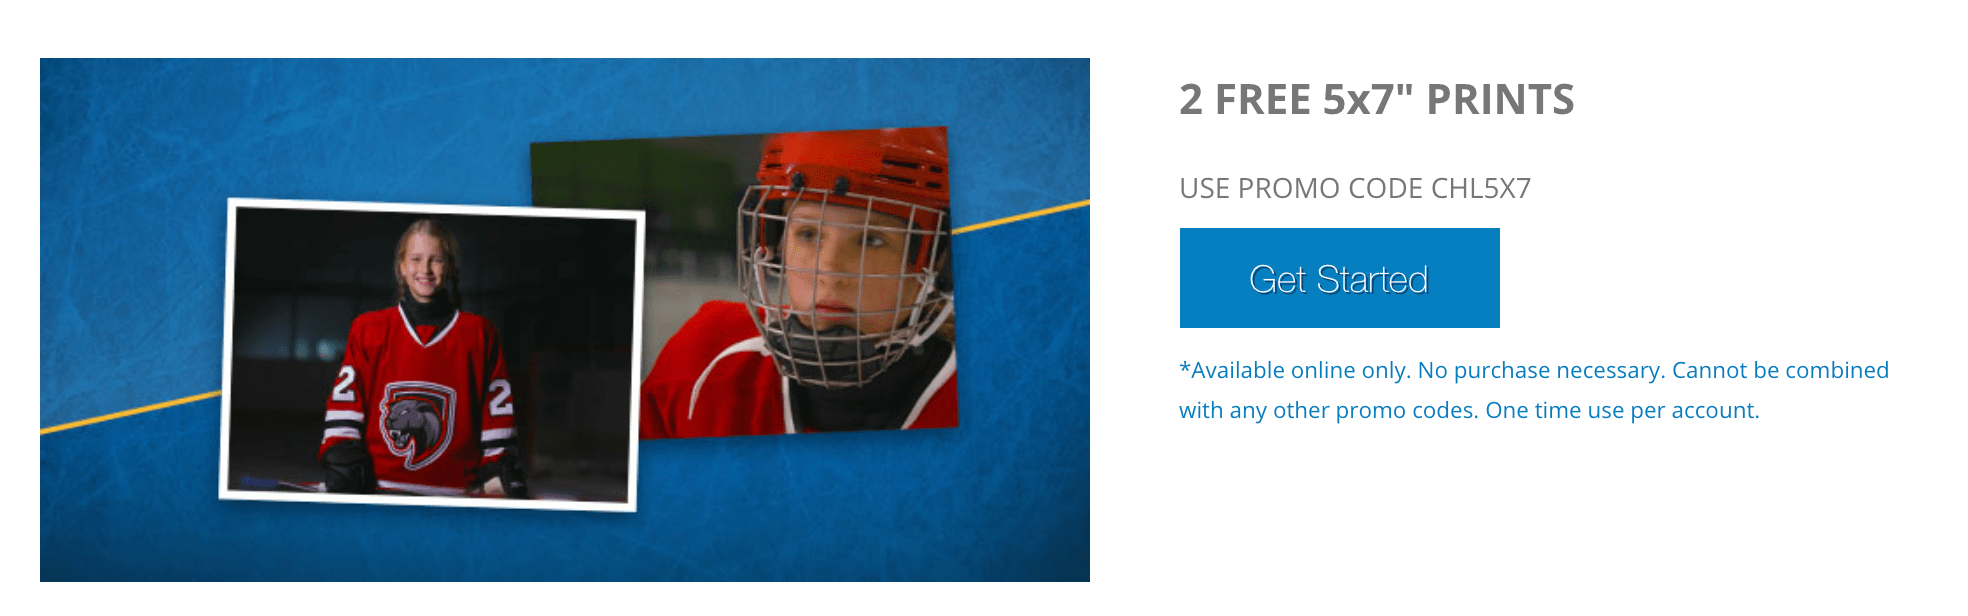 Walmart Photo Centre Canada Freebie: 2 FREE 5x7